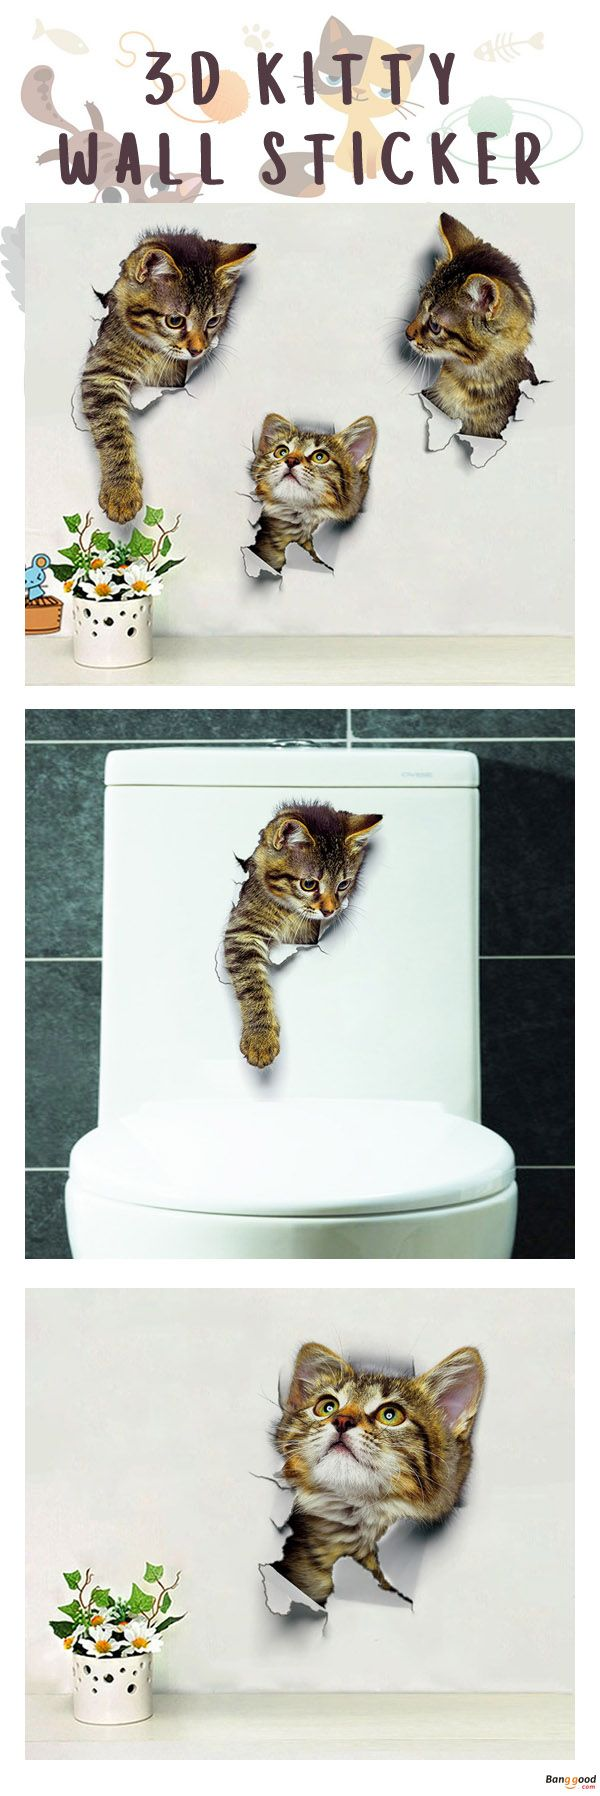 US$1.19+ Free Shipping. 3D cat wall sticker. 3 styles available. Shop at banggood. #home #homedecor#decor#sticker